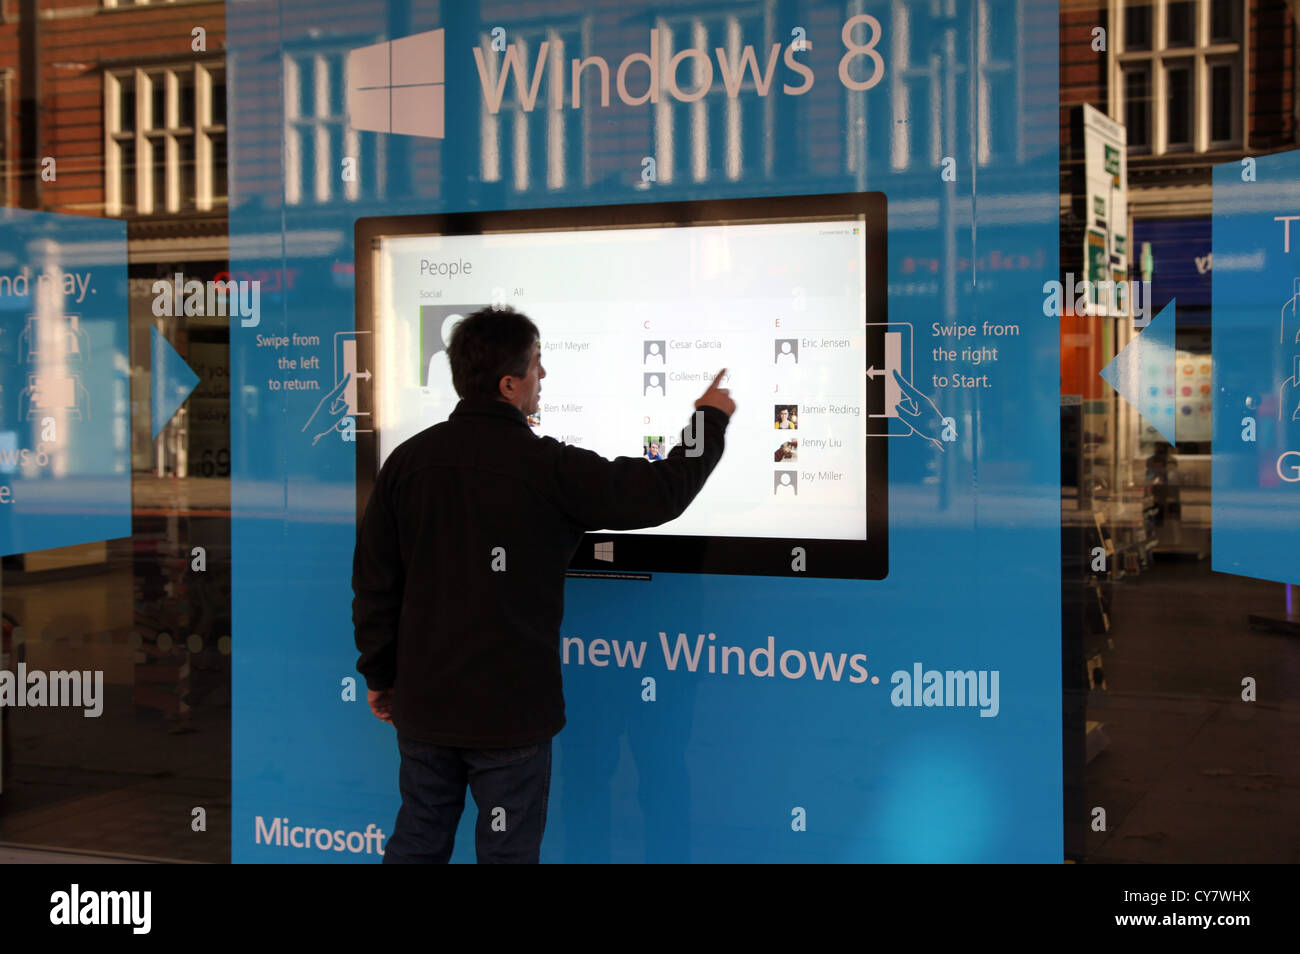 Windows 8 computer - Stock Photo Store Window Display For New Windows 8 Computer Software London